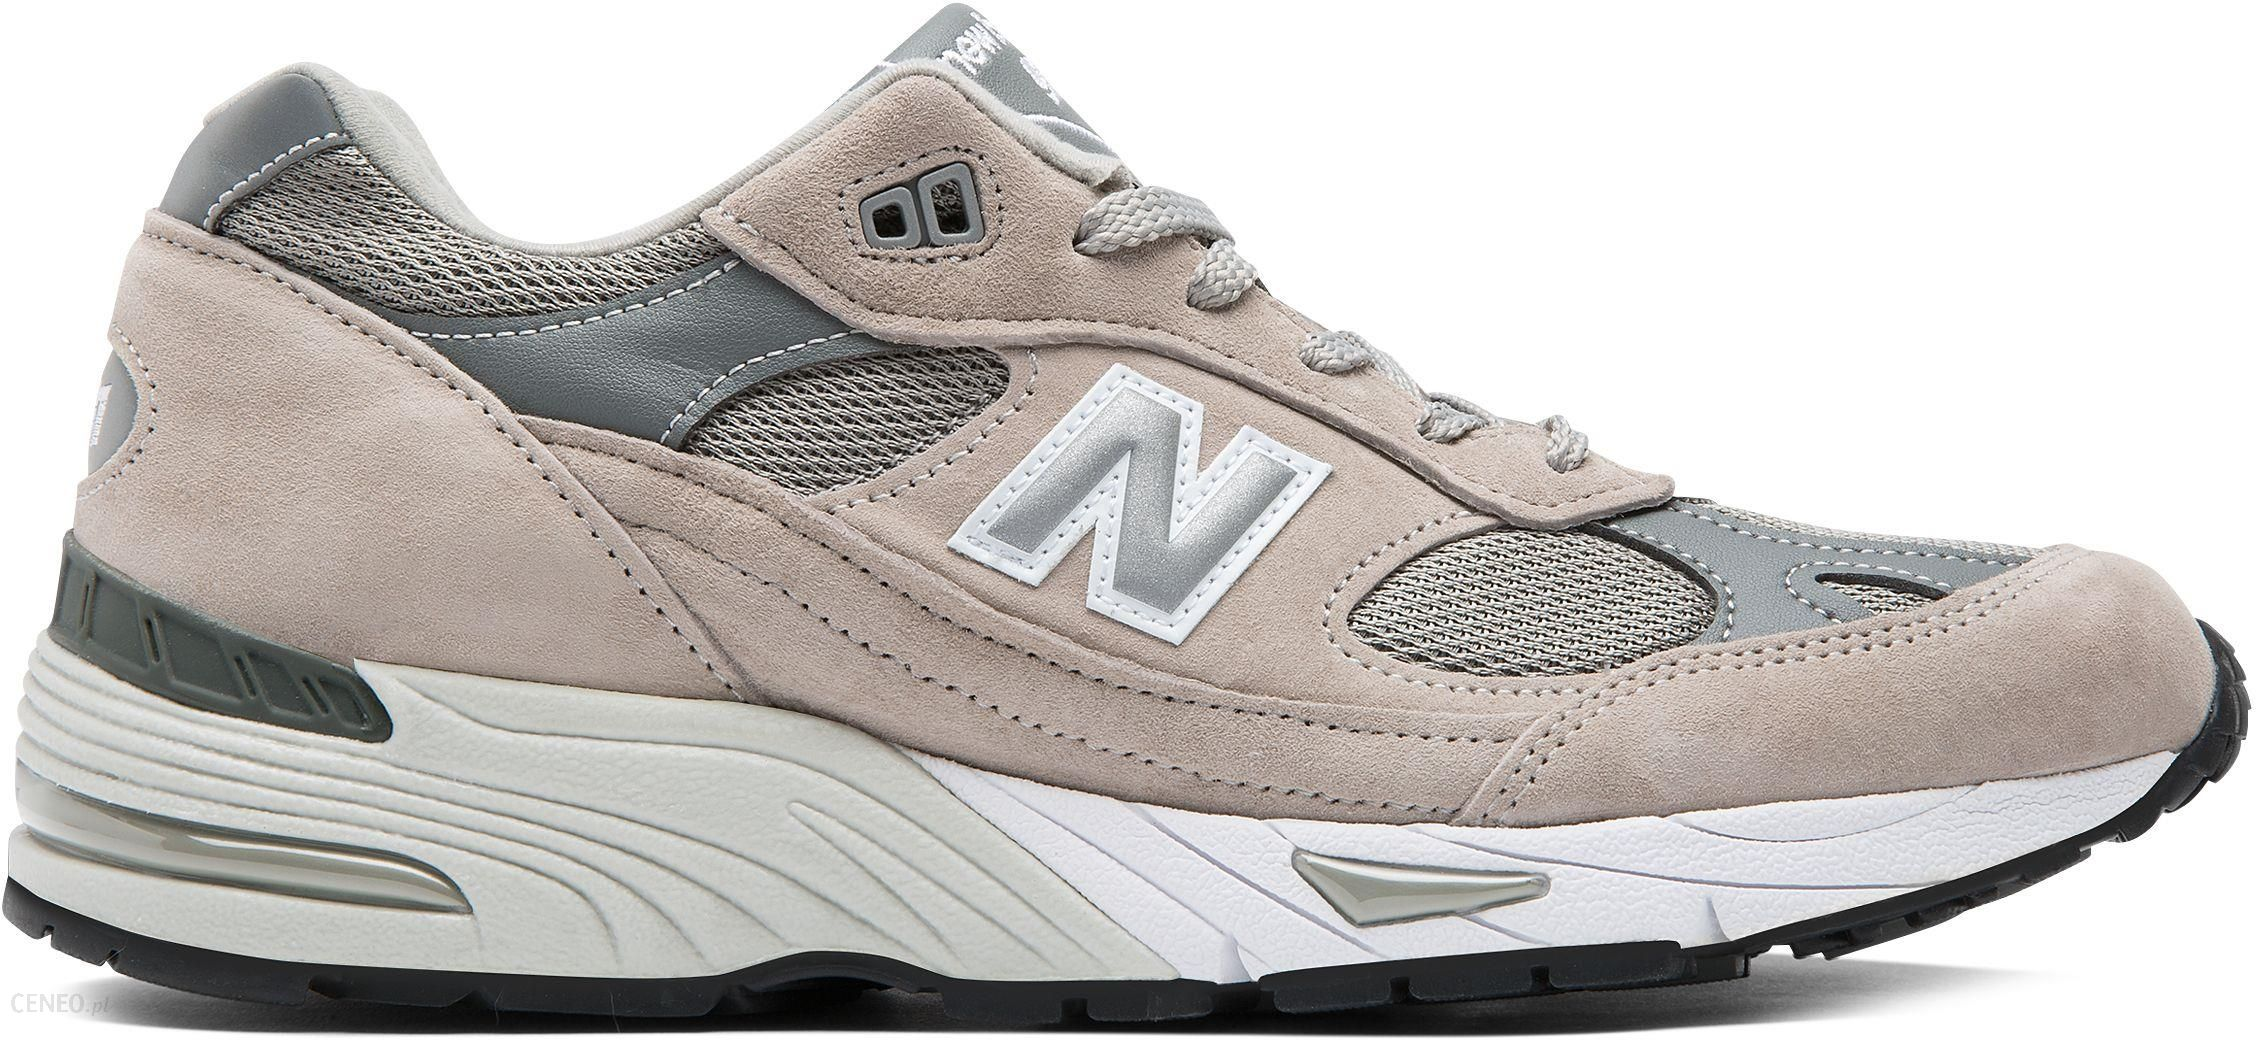 New Balance   991 Leather   Men s Made in UK Collection   M991GL - zdjęcie 1 4f208f2c4e72